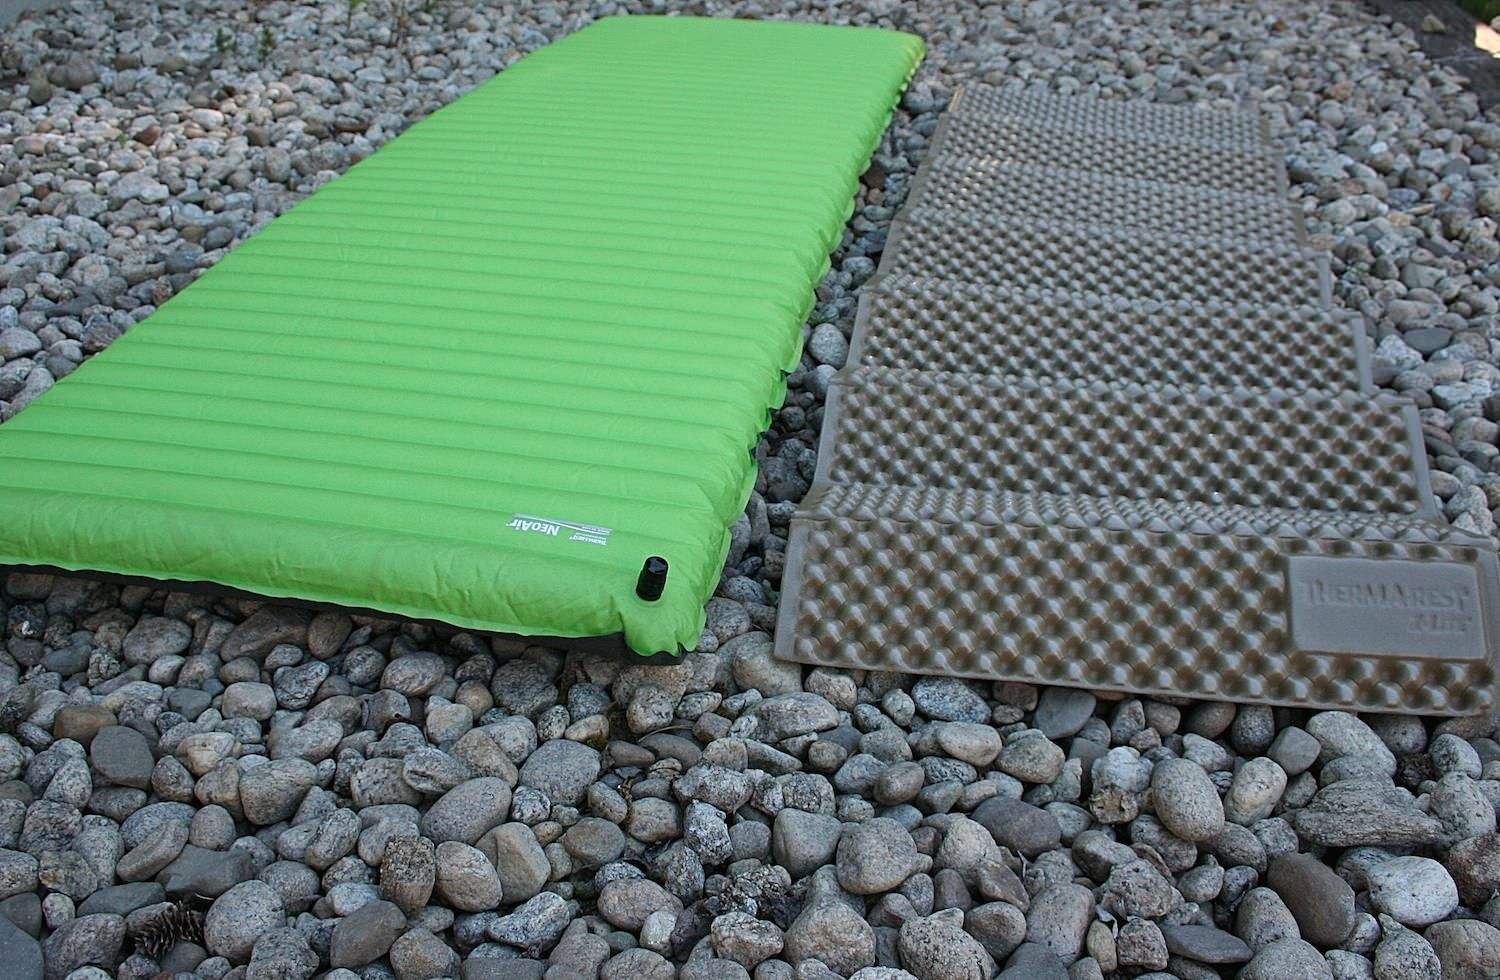 Even The Best Backpacking Sleeping Pads Of 2016 Have Pros And Cons We Review Ultralight Backpacking Sleeping Bag Backpacking Sleeping Pad Camping Sleeping Pad